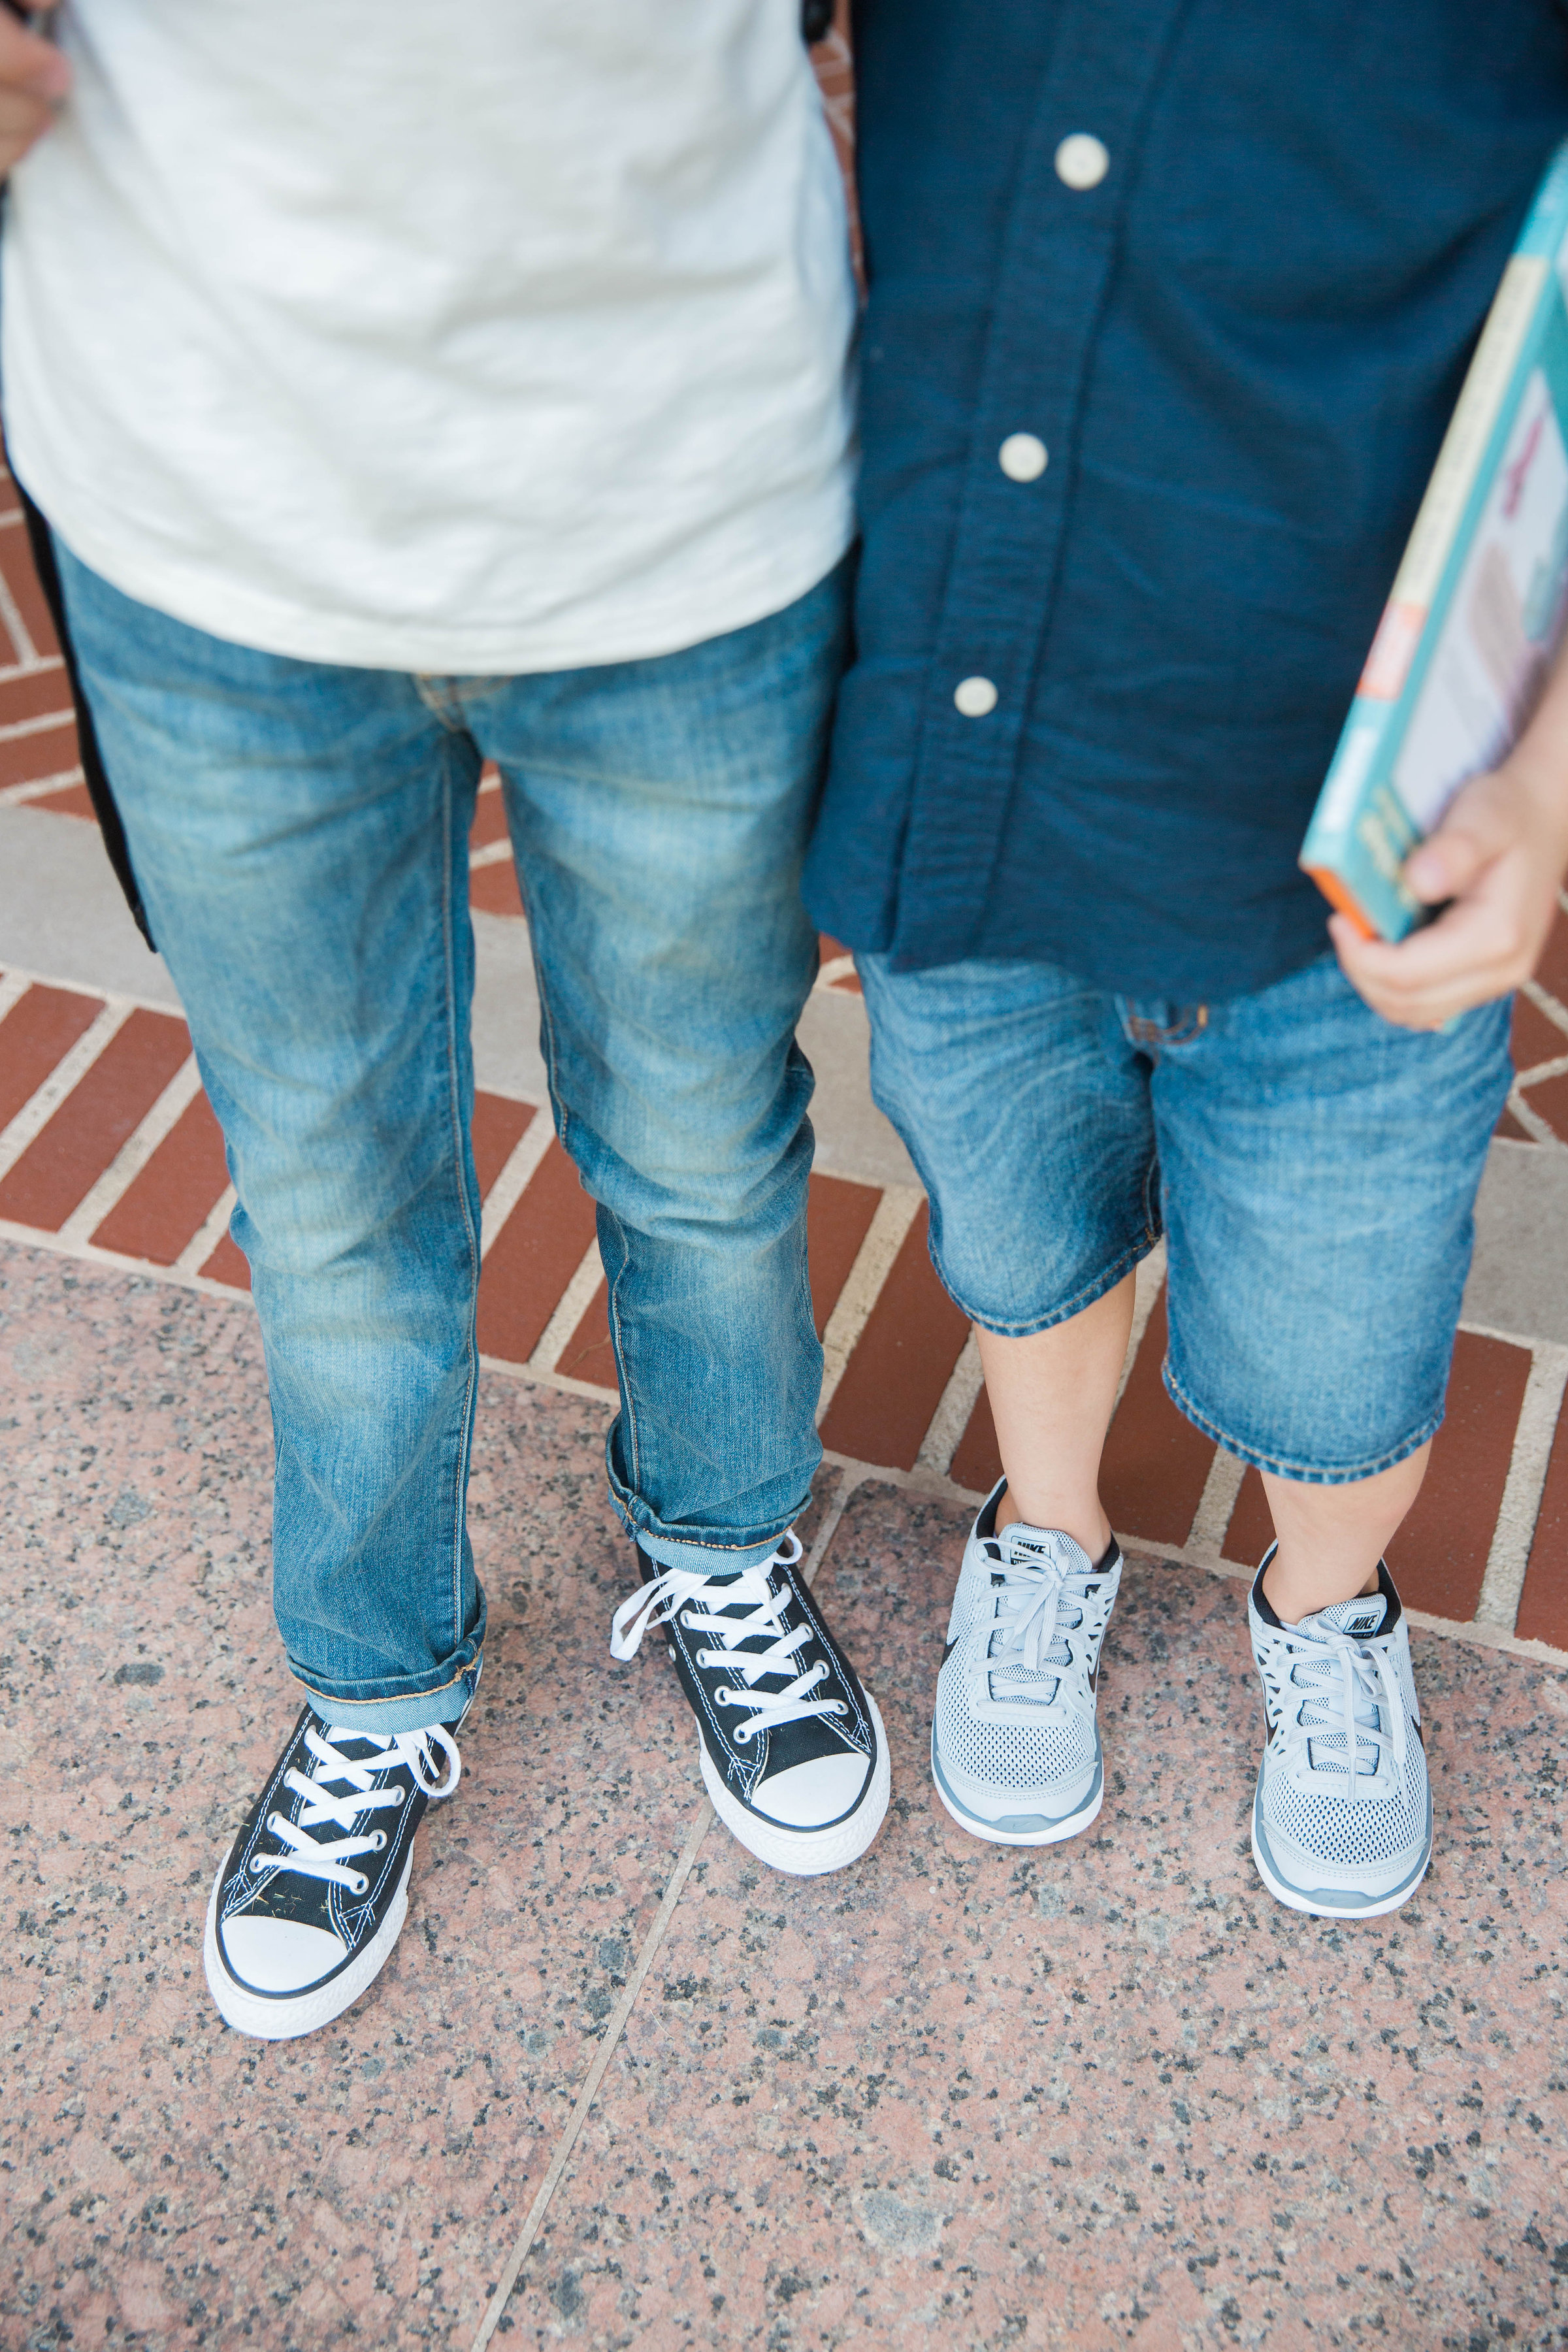 Back to school shoes for little boys